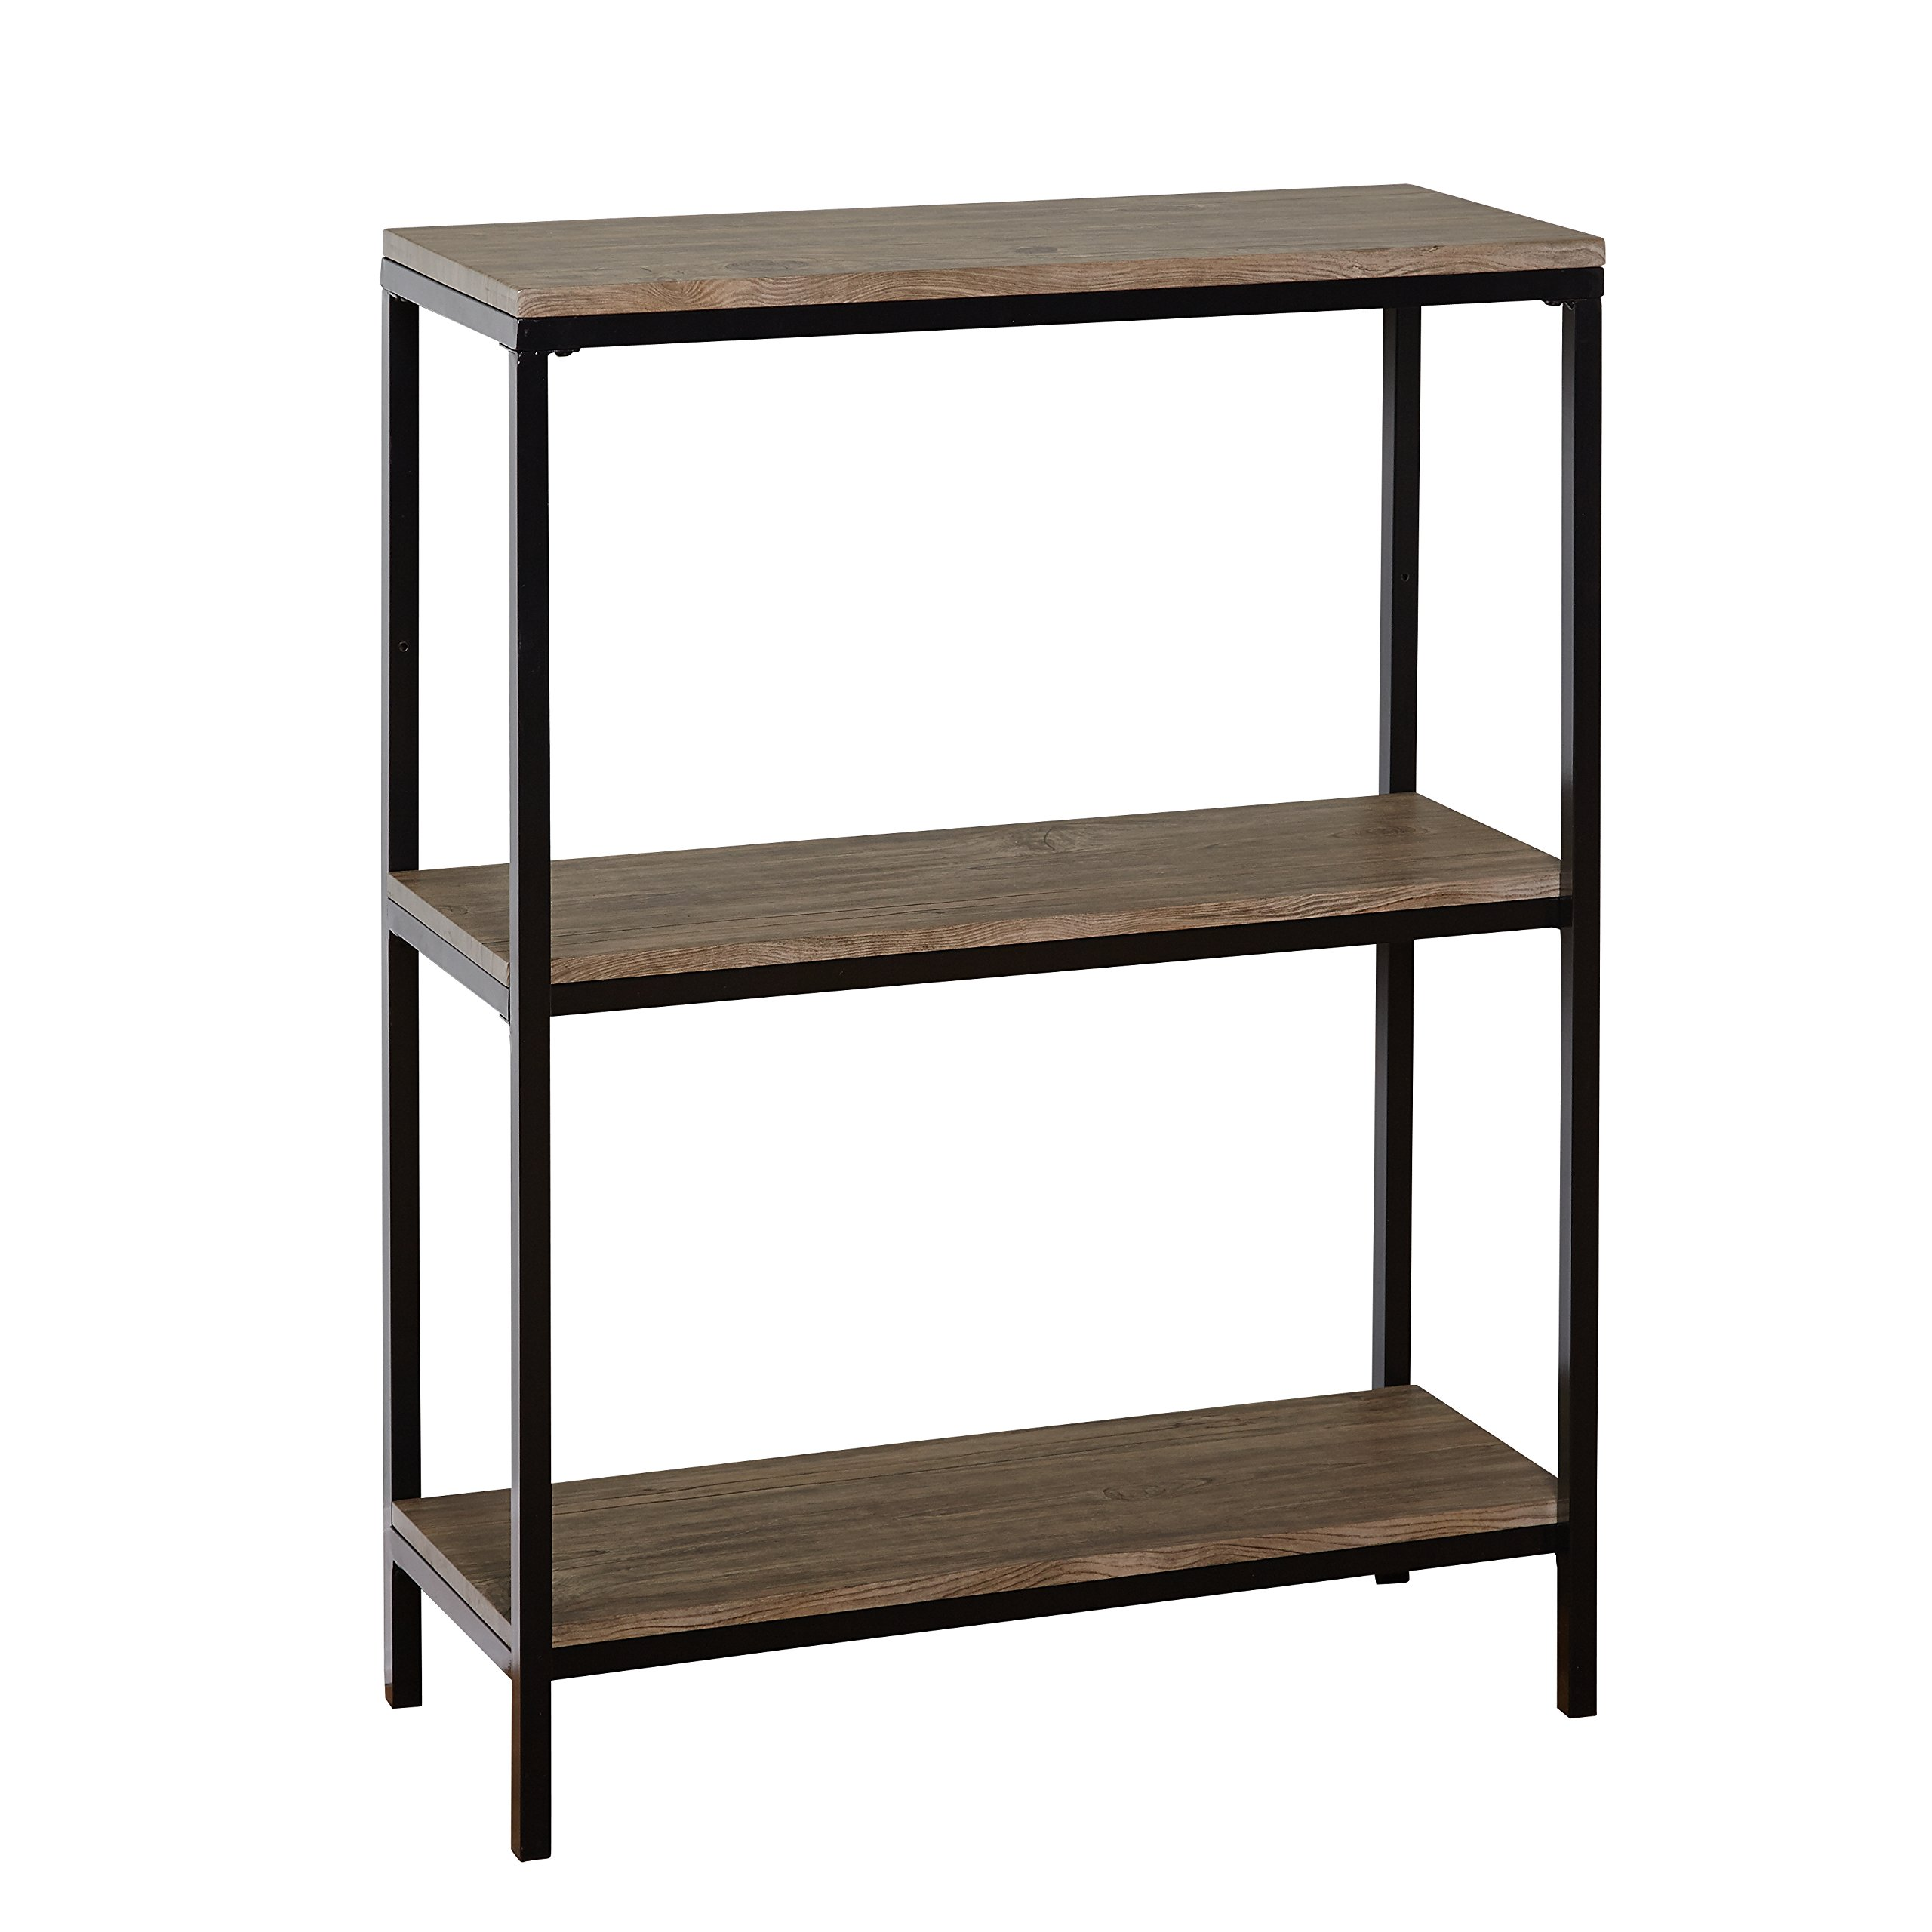 Target Marketing Systems Piazza Collection Mid Century Modern 3 Level Living Room Bookcase, Black/Wood